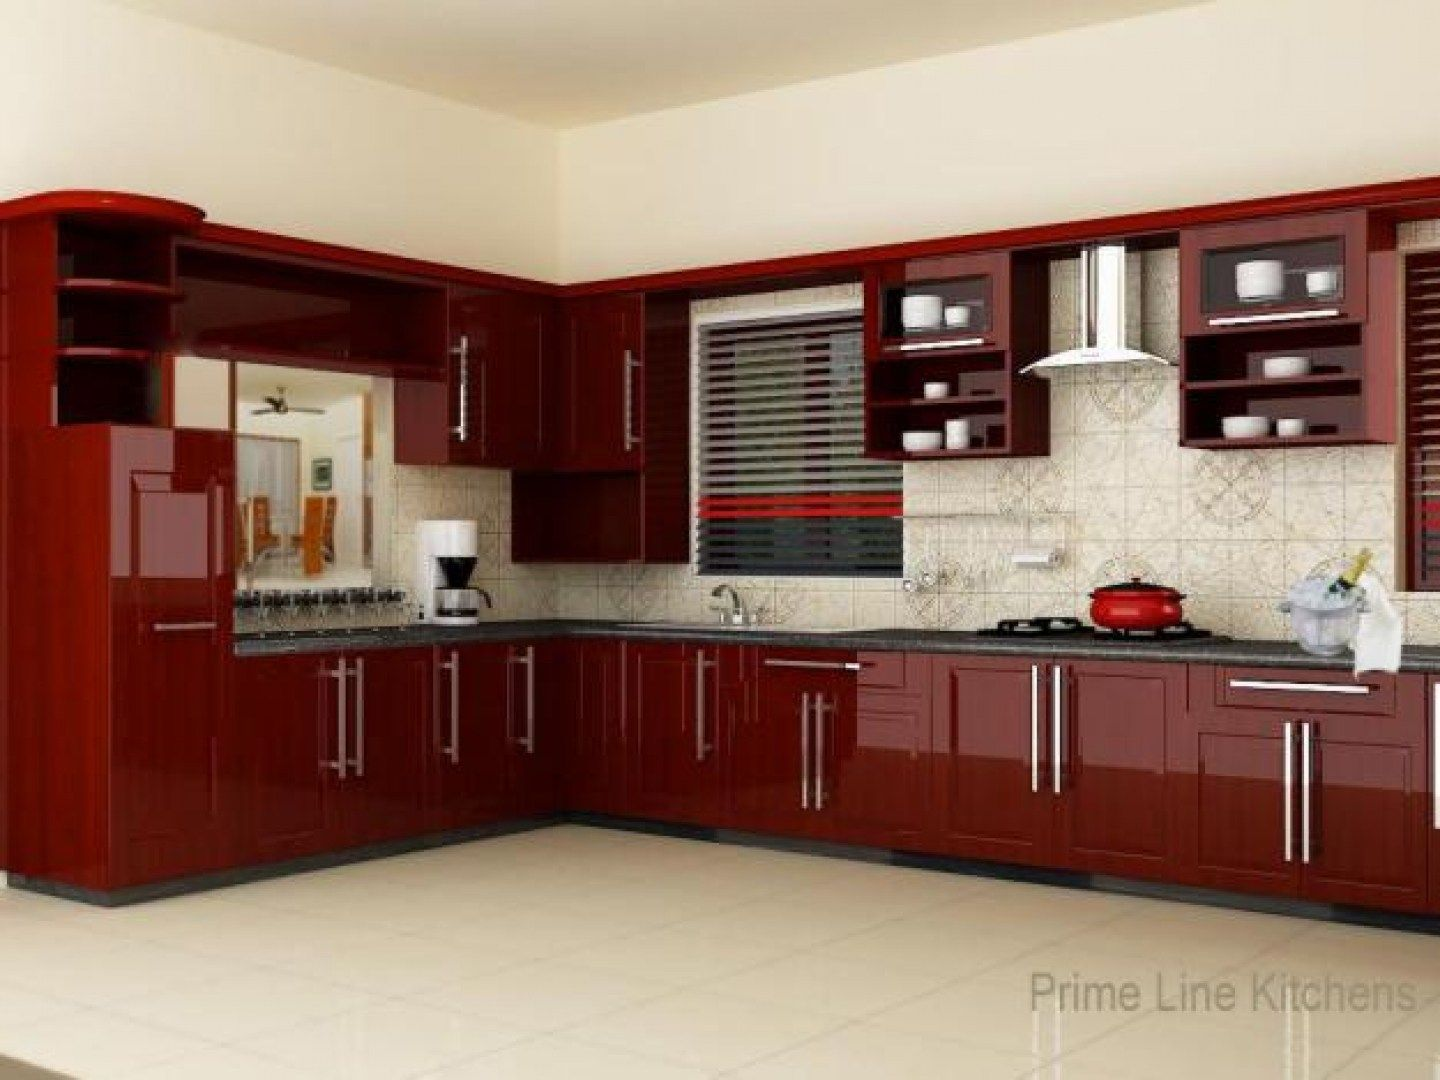 House Kitchen Model Of Kitchen Design Ideas Kitchen Woodwork Designs Hyderabad